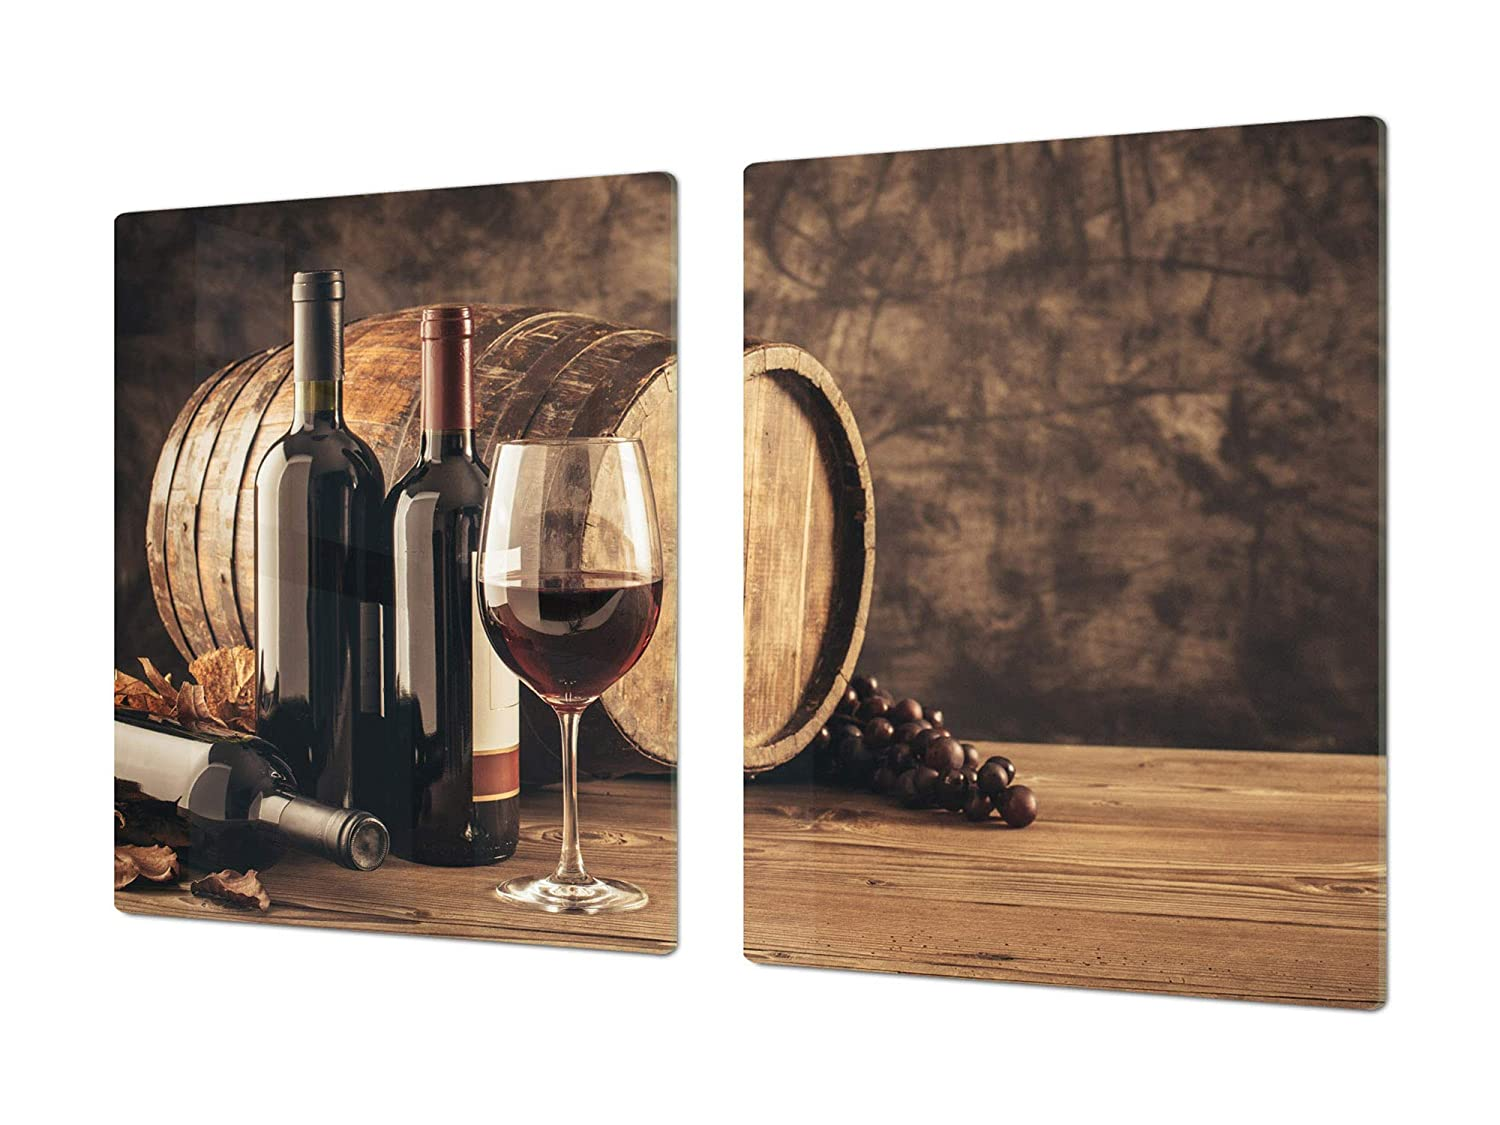 Bottles of wine 2 2x40x52 Big Kitchen Board & Induction Cooktop Cover – Glass Pastry Board – Heat and Bacteria Resistant;Single  80 x 52 cm (31,5  x 20,47 ); Double  40 x 52 cm (15,75  x 20,47 ); Wine Series DD04